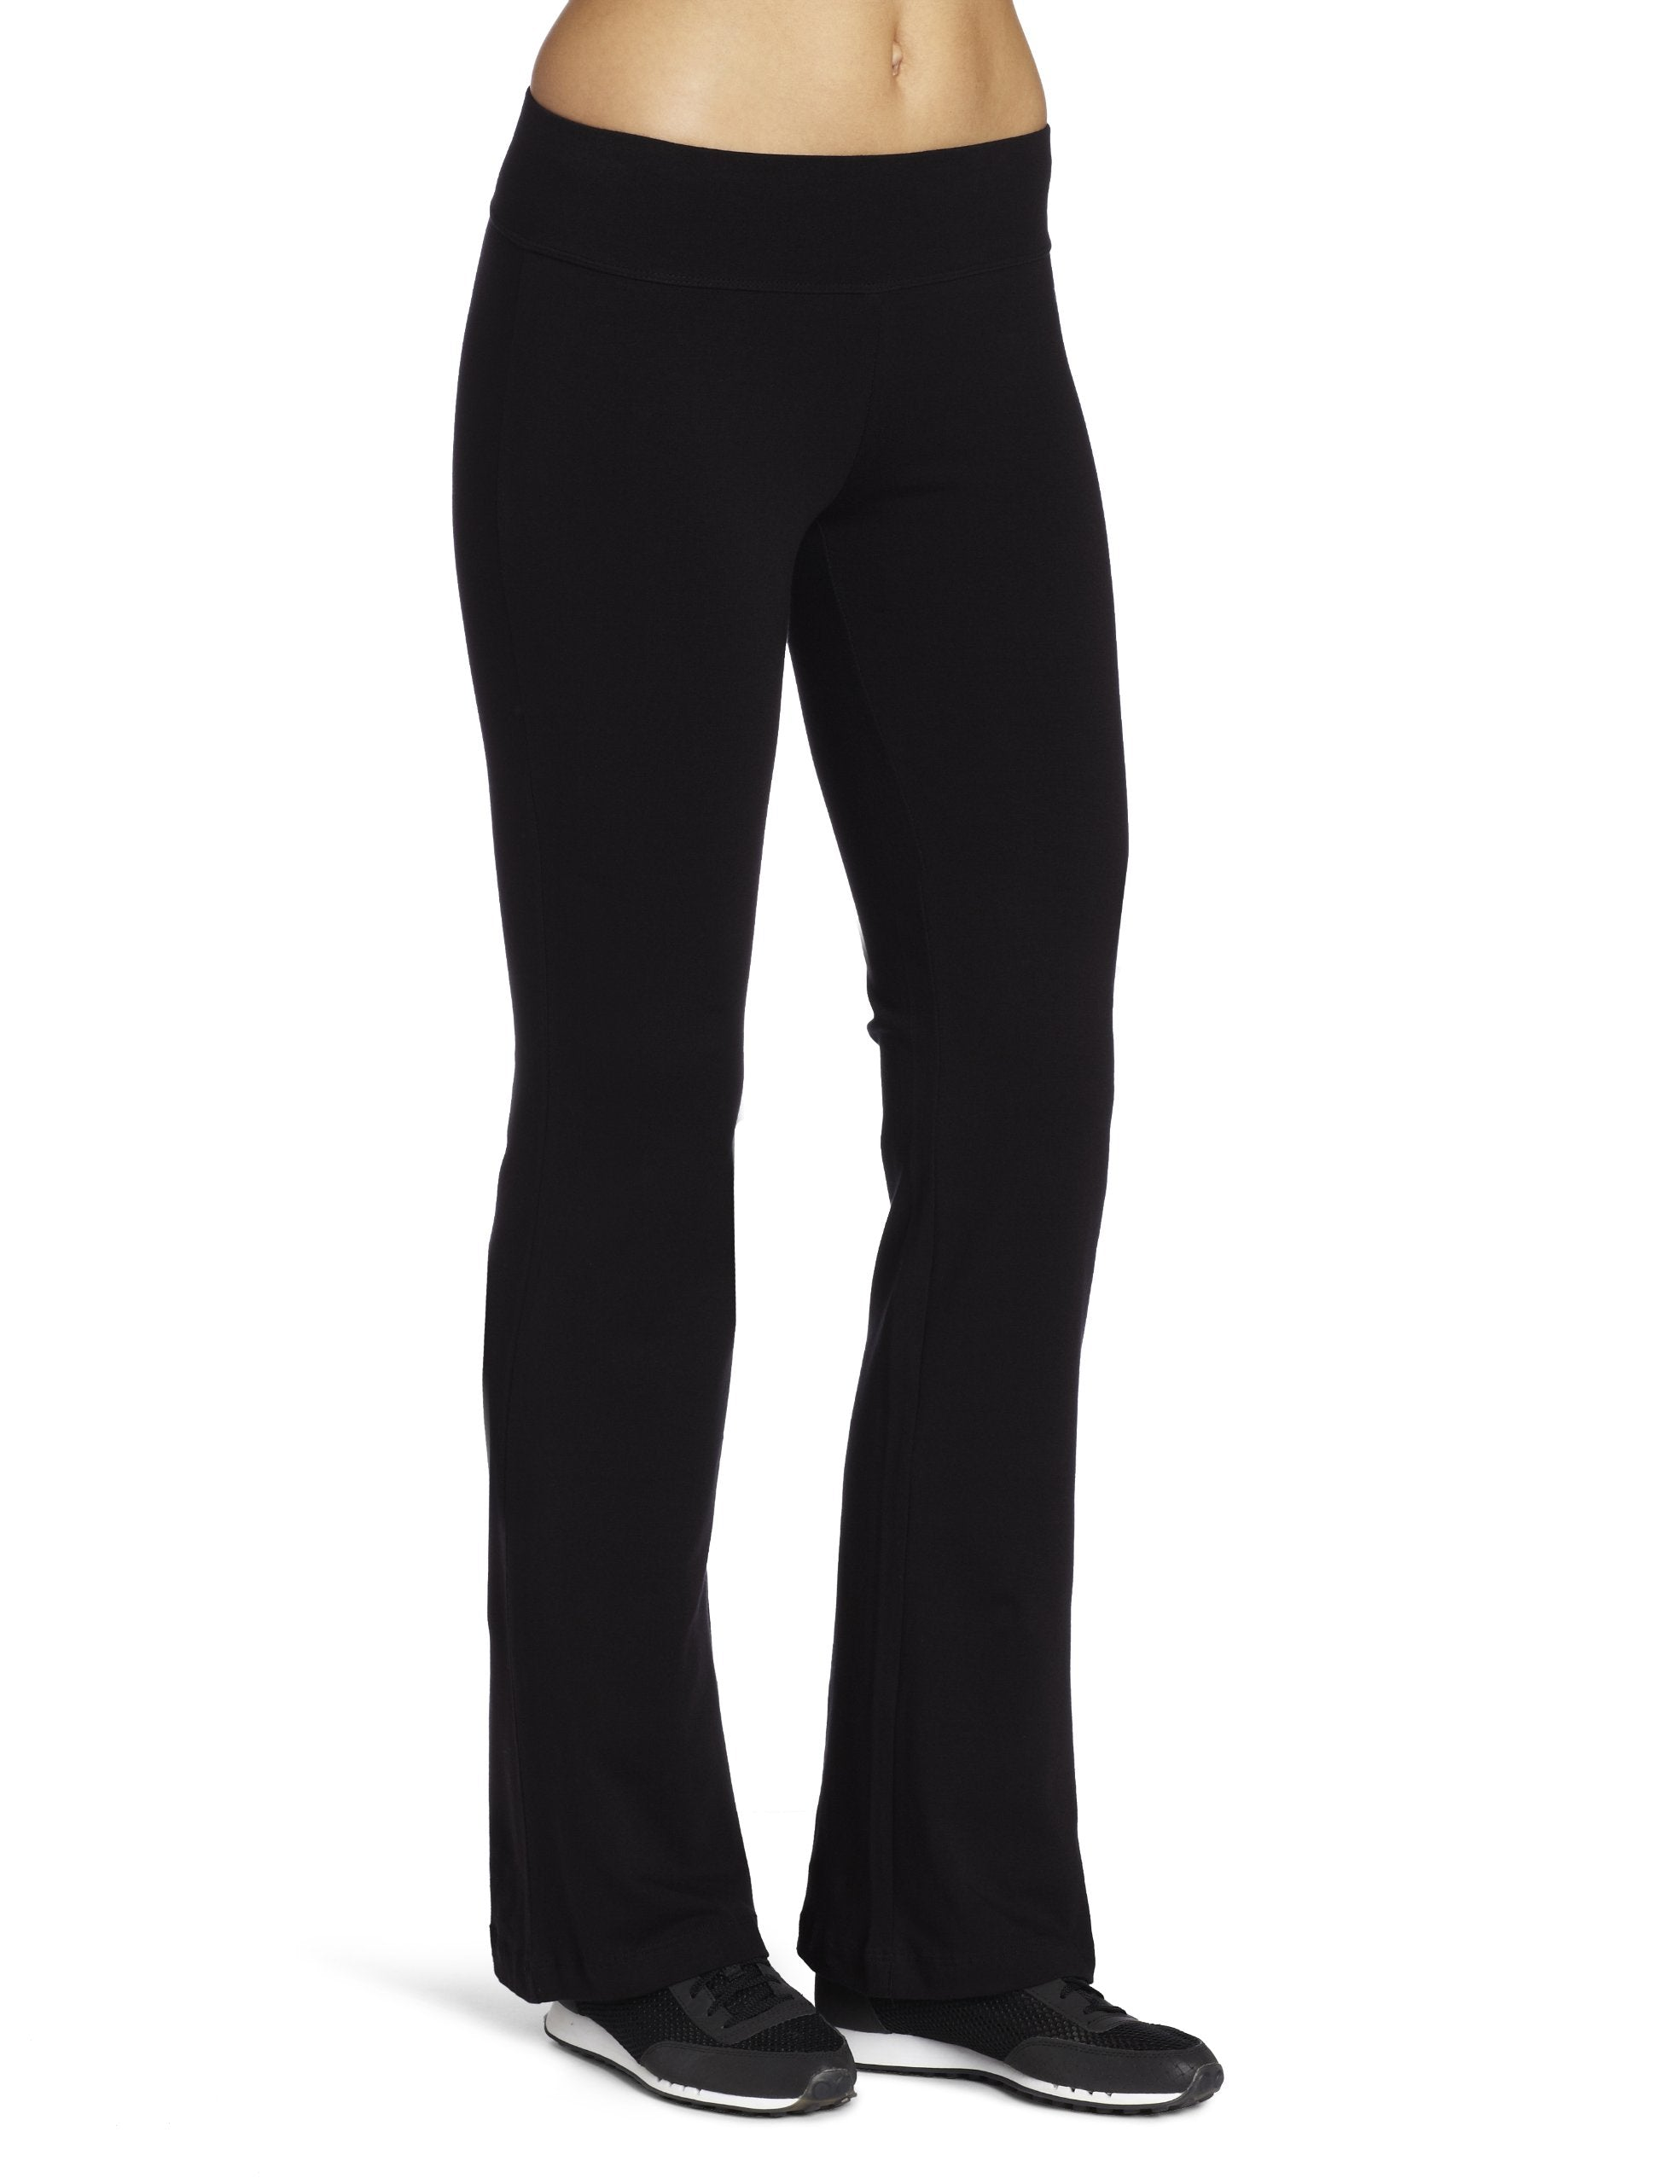 Spalding Women's Bootleg Pant, Black, all sizes available - Ctfitnesswear